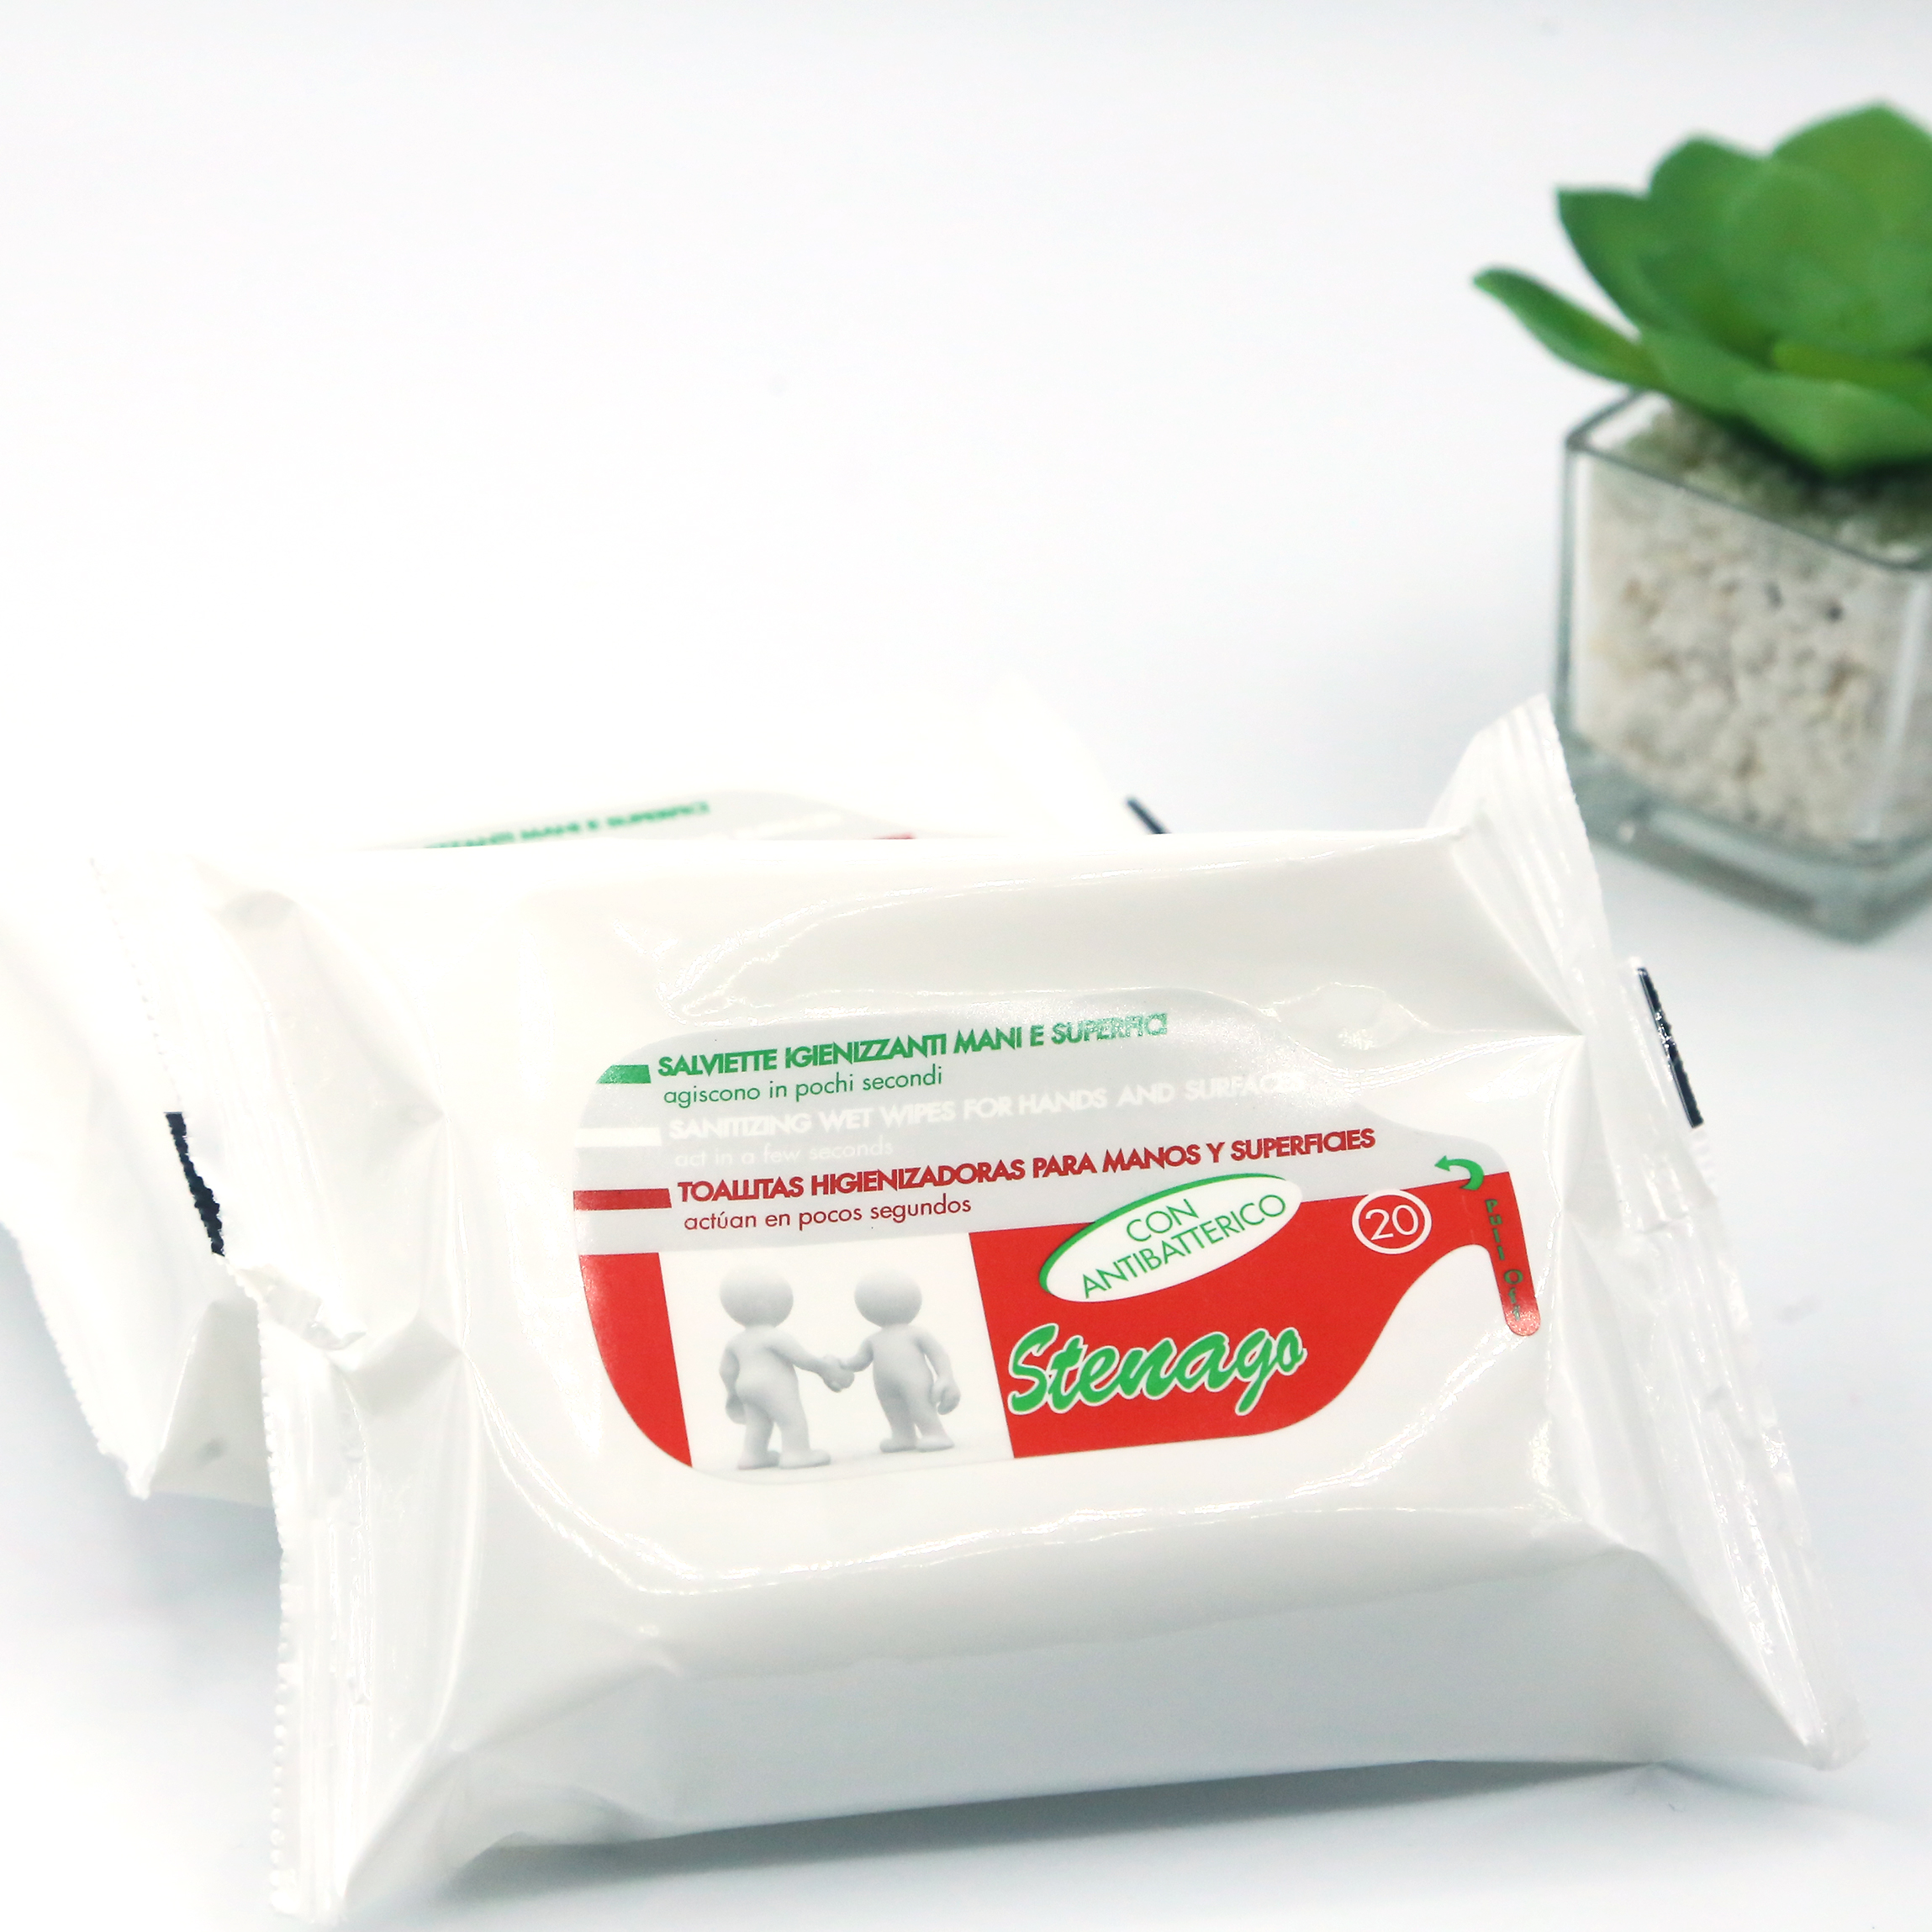 Towels Higienizadoras For Hands And Surfaces With Antibacterial Alcohol Sanitizer